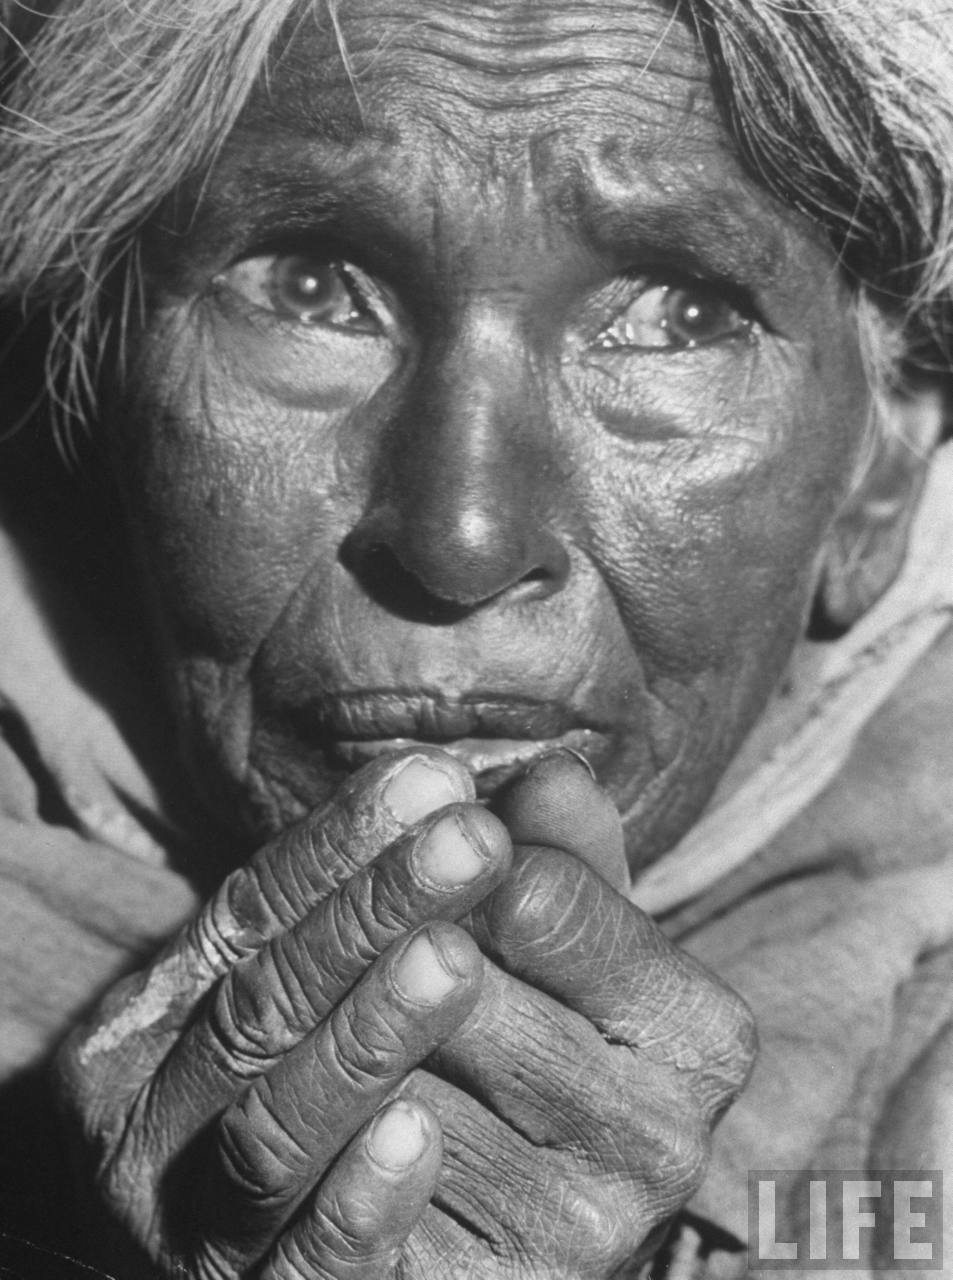 Starving middle-aged Indian woman who has aged significantly as a result of famine over the last 2 yrs. due to a drought